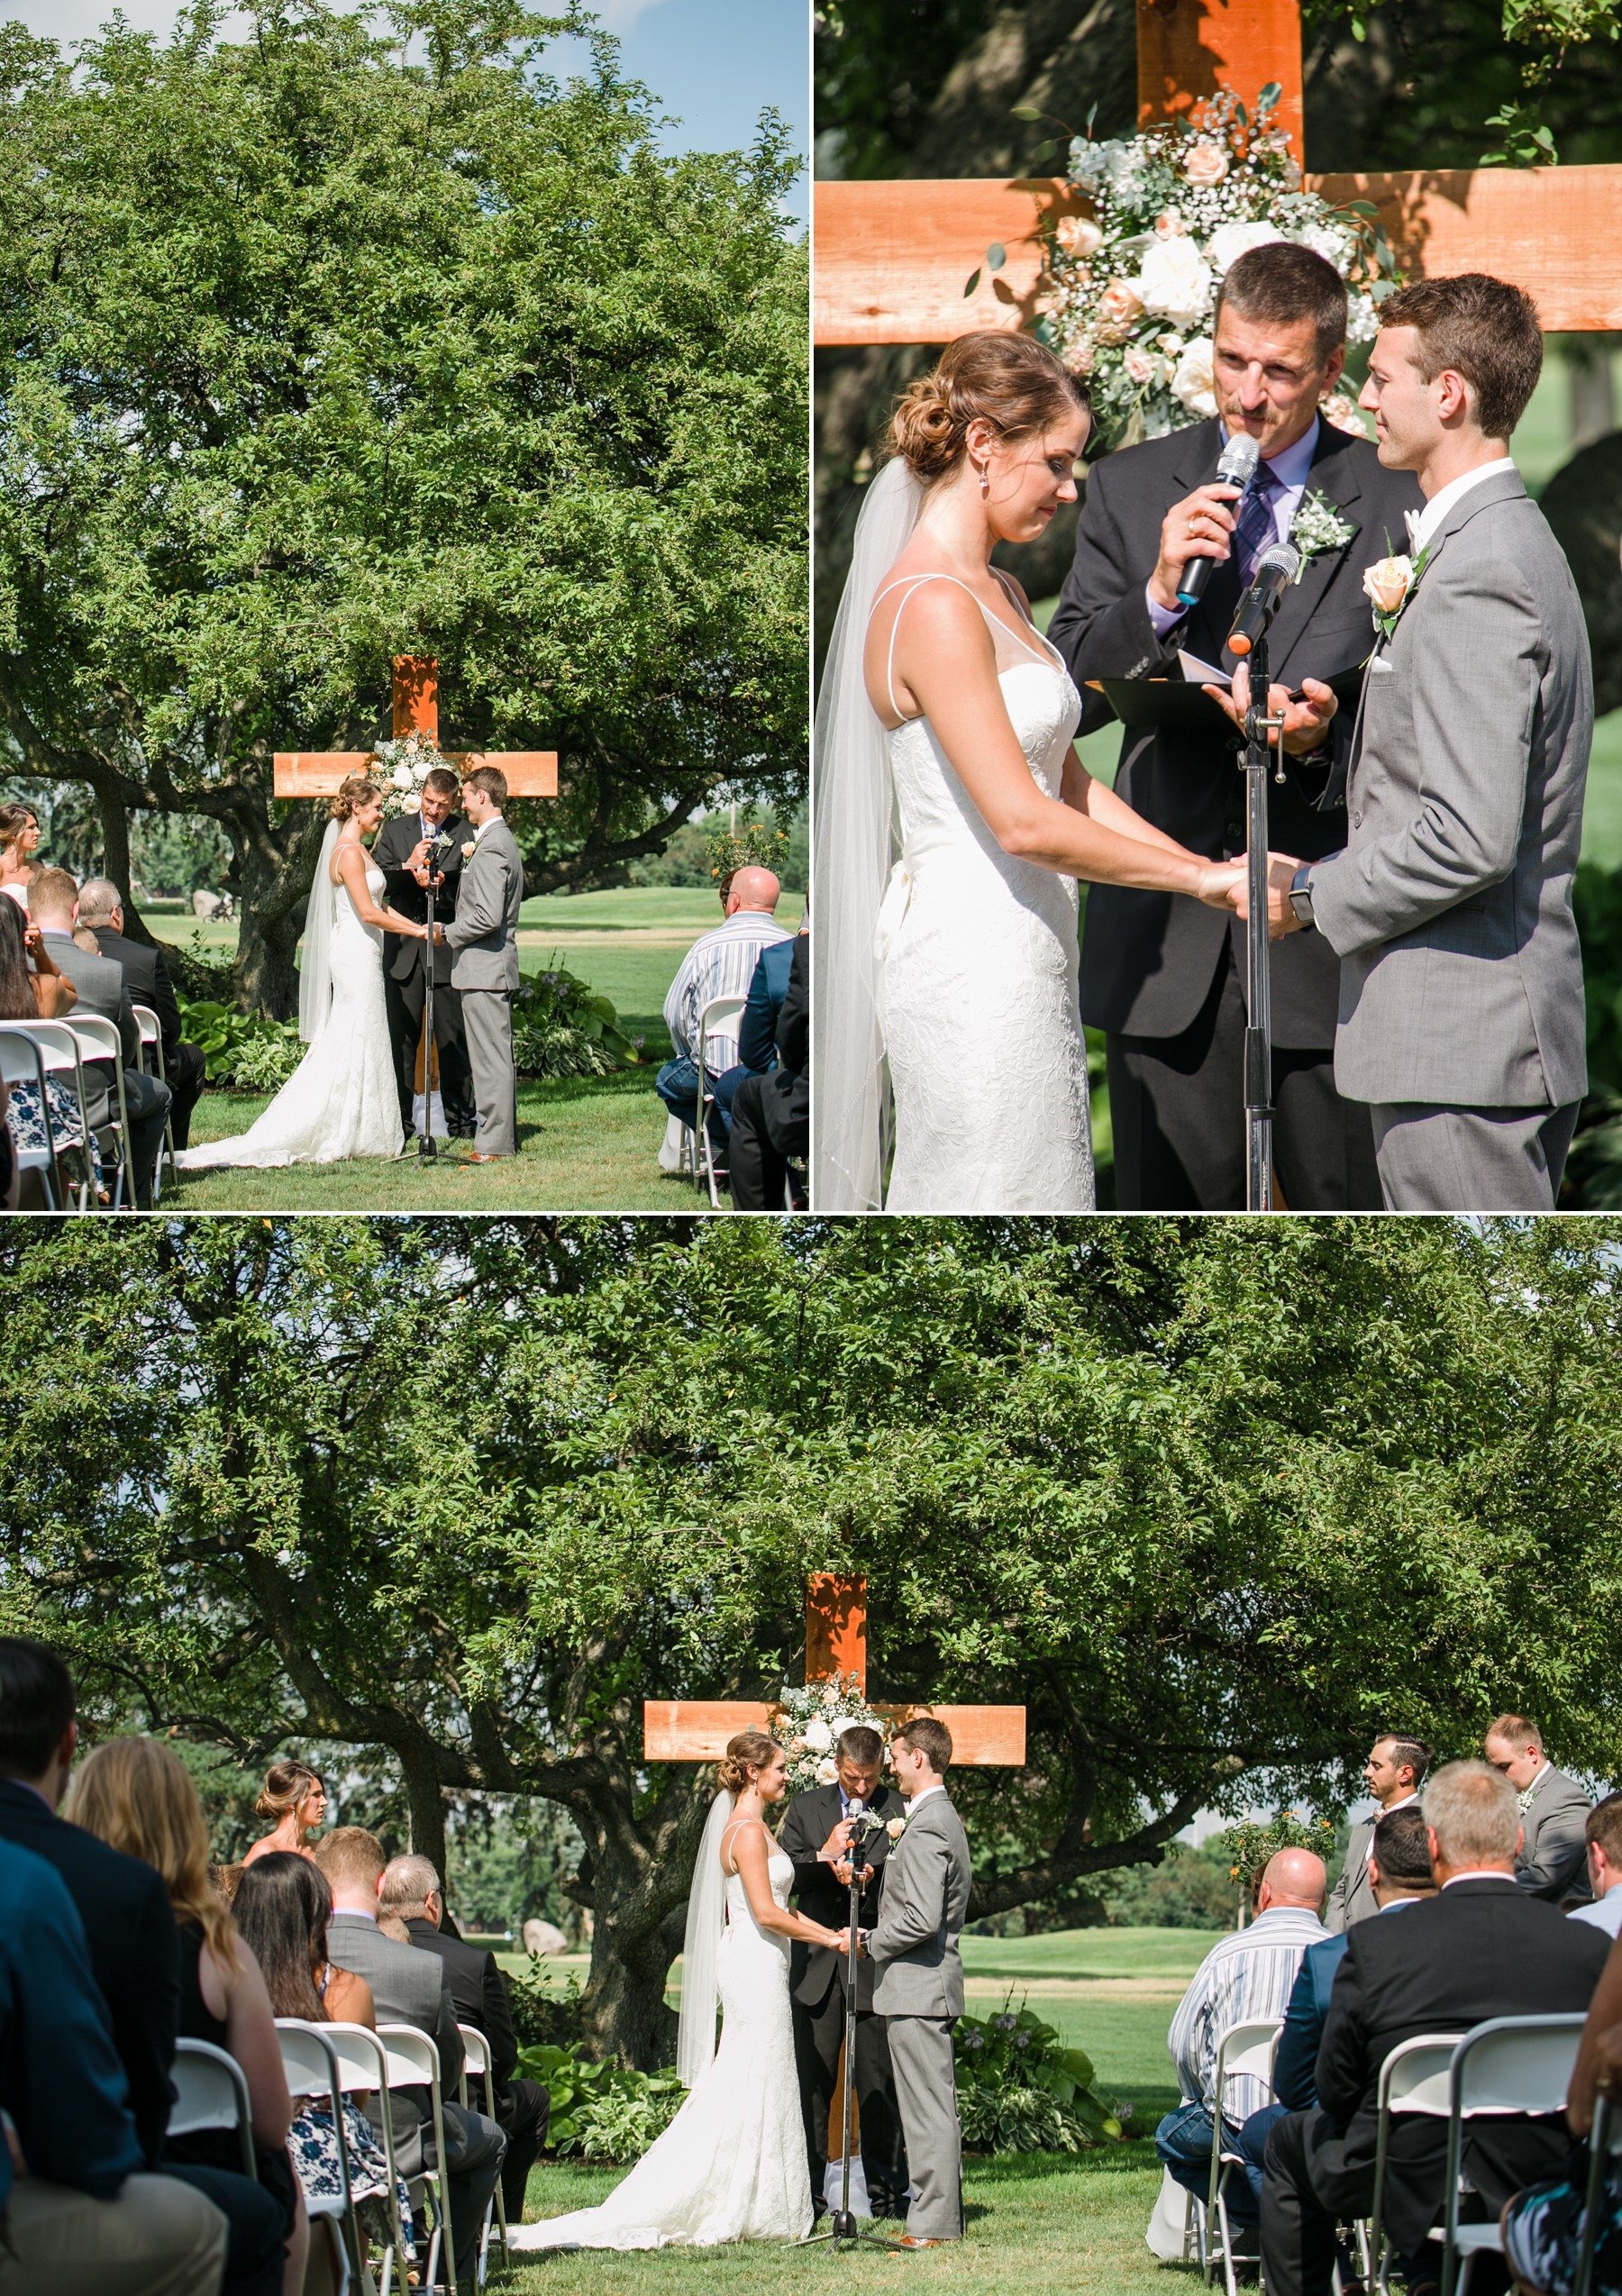 Highland-meadows-wedding-photos 12.jpg